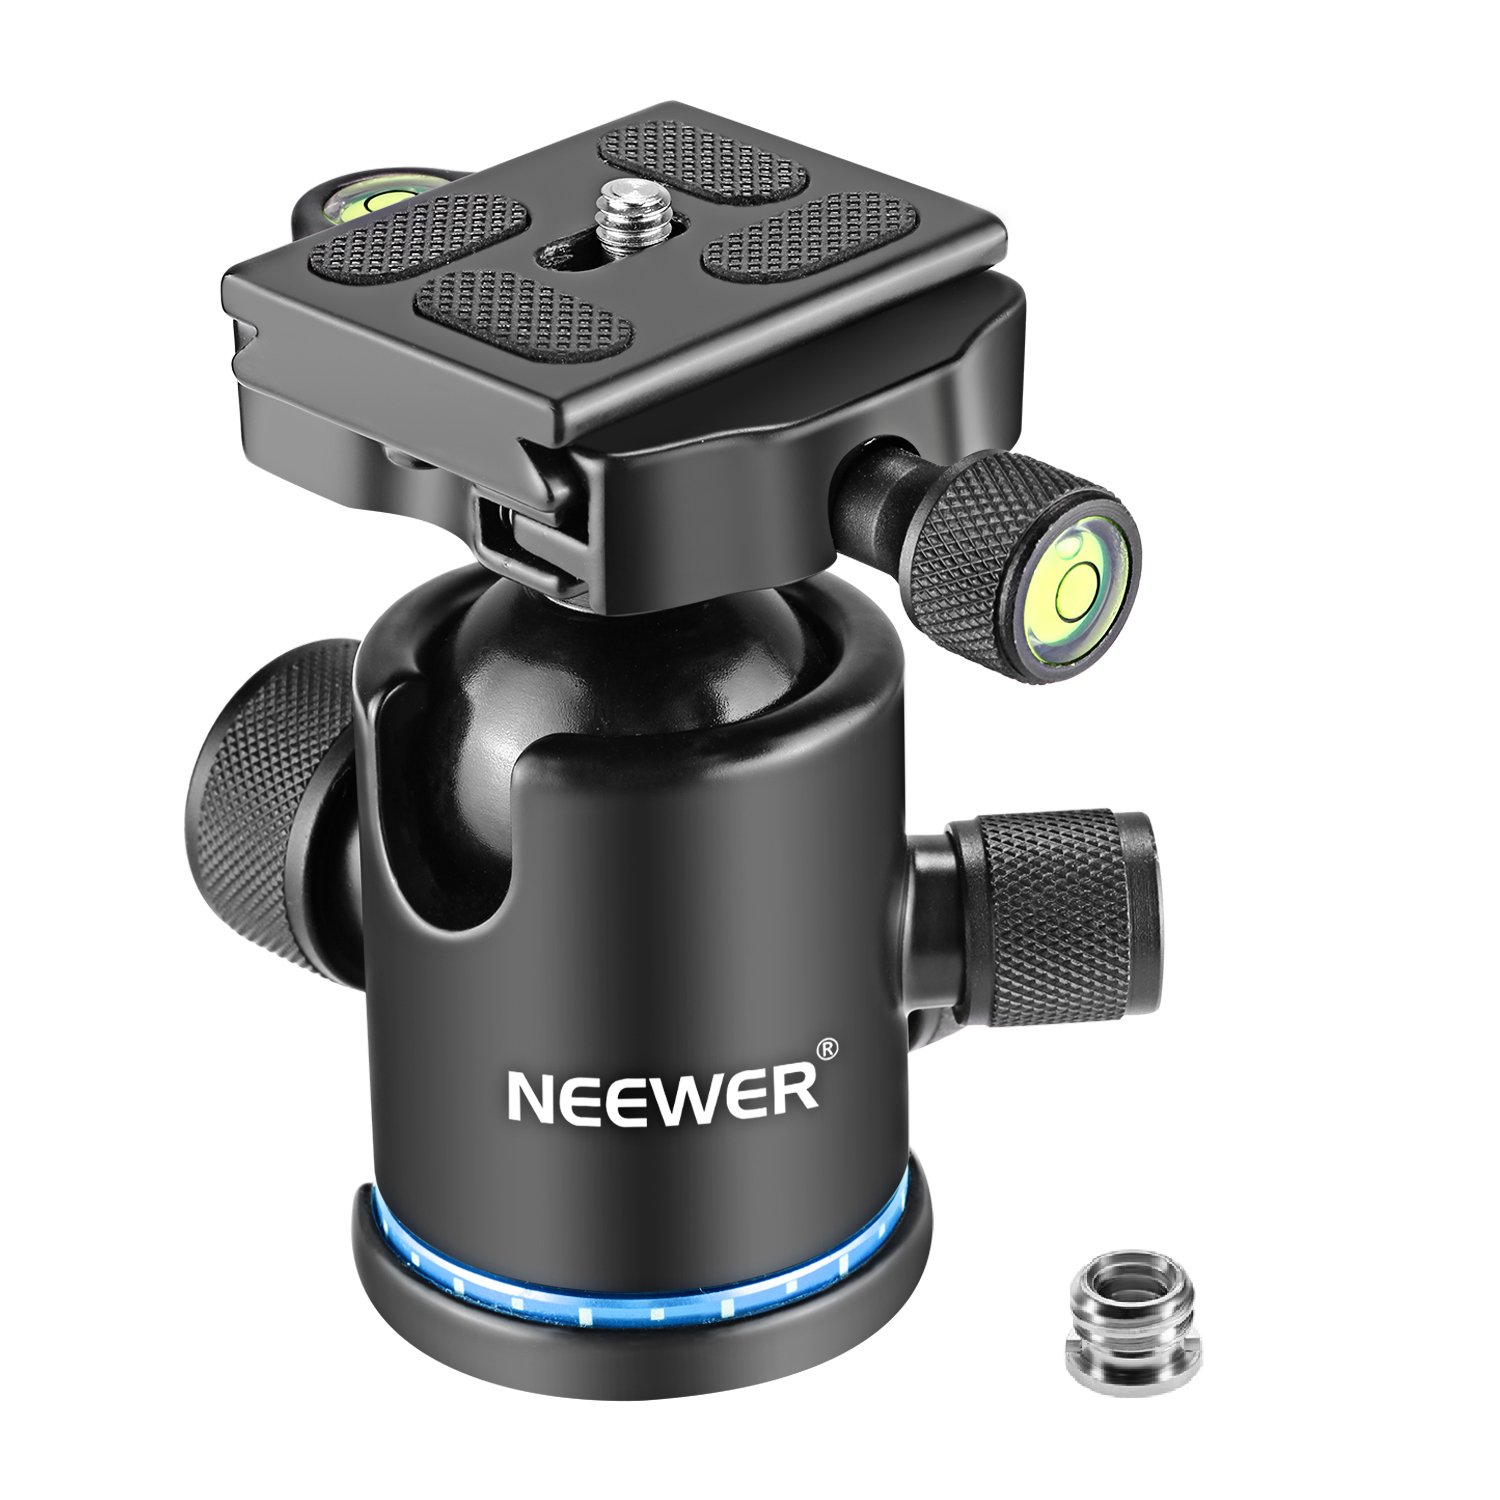 Neewer Professional Metal 360 Degree Rotating Panoramic Ball Head with 1/4 inch Quick Shoe Plate and Bubble Level,up to 17.6pounds/8kilograms,for Tripod,Monopod,Slider,DSLR Camera,Camcorder(Blue) by Neewer